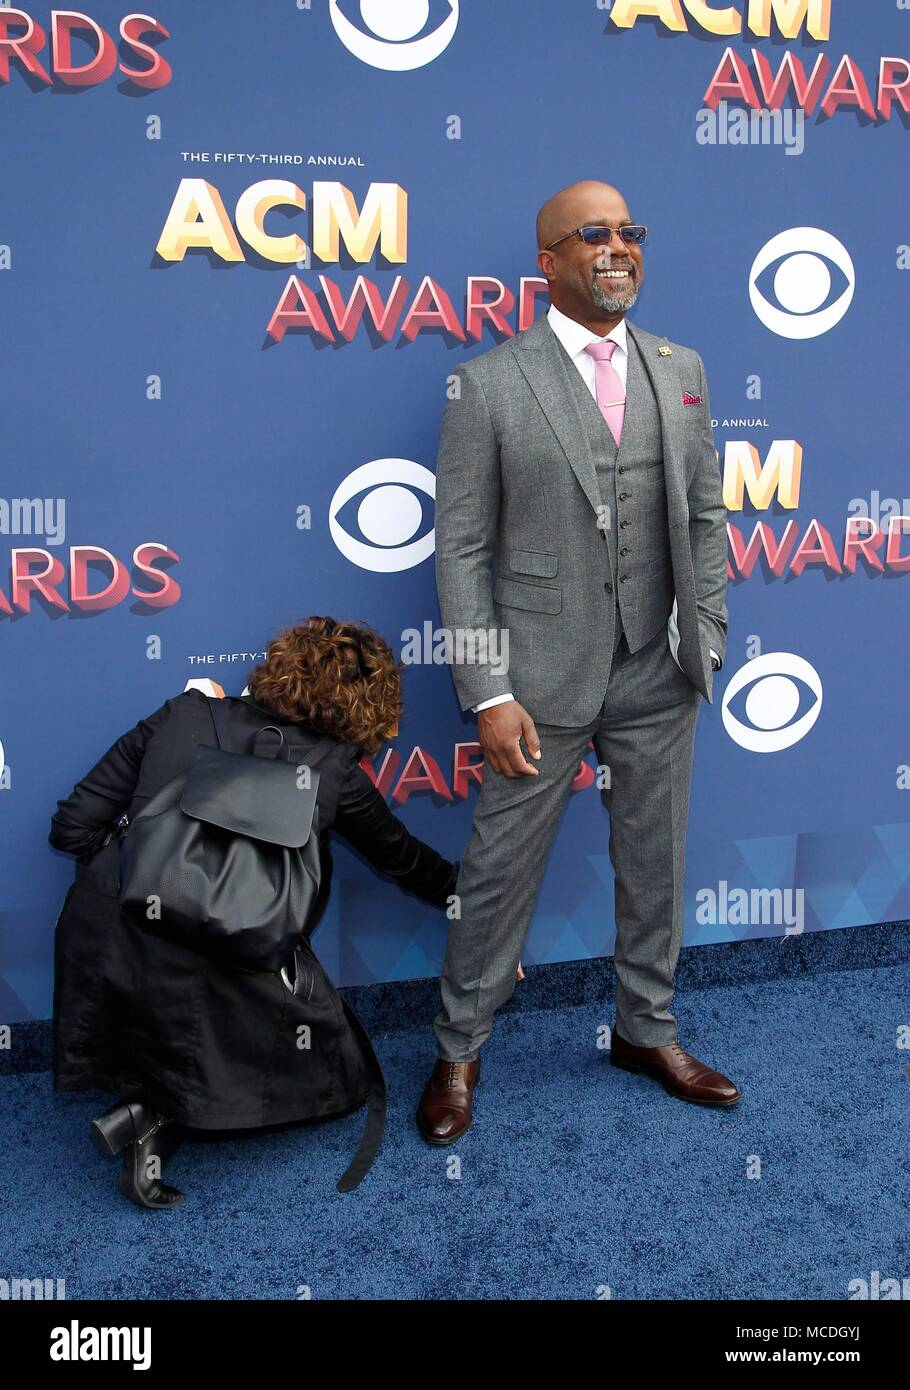 Publicist, Darius Rucker at arrivals for 53rd Academy of Country Music (ACM) Awards - Arrivals 3, MGM Grand Garden Arena, Las Vegas, NV April 15, 2018. Photo By: JA/Everett Collection - Stock Image